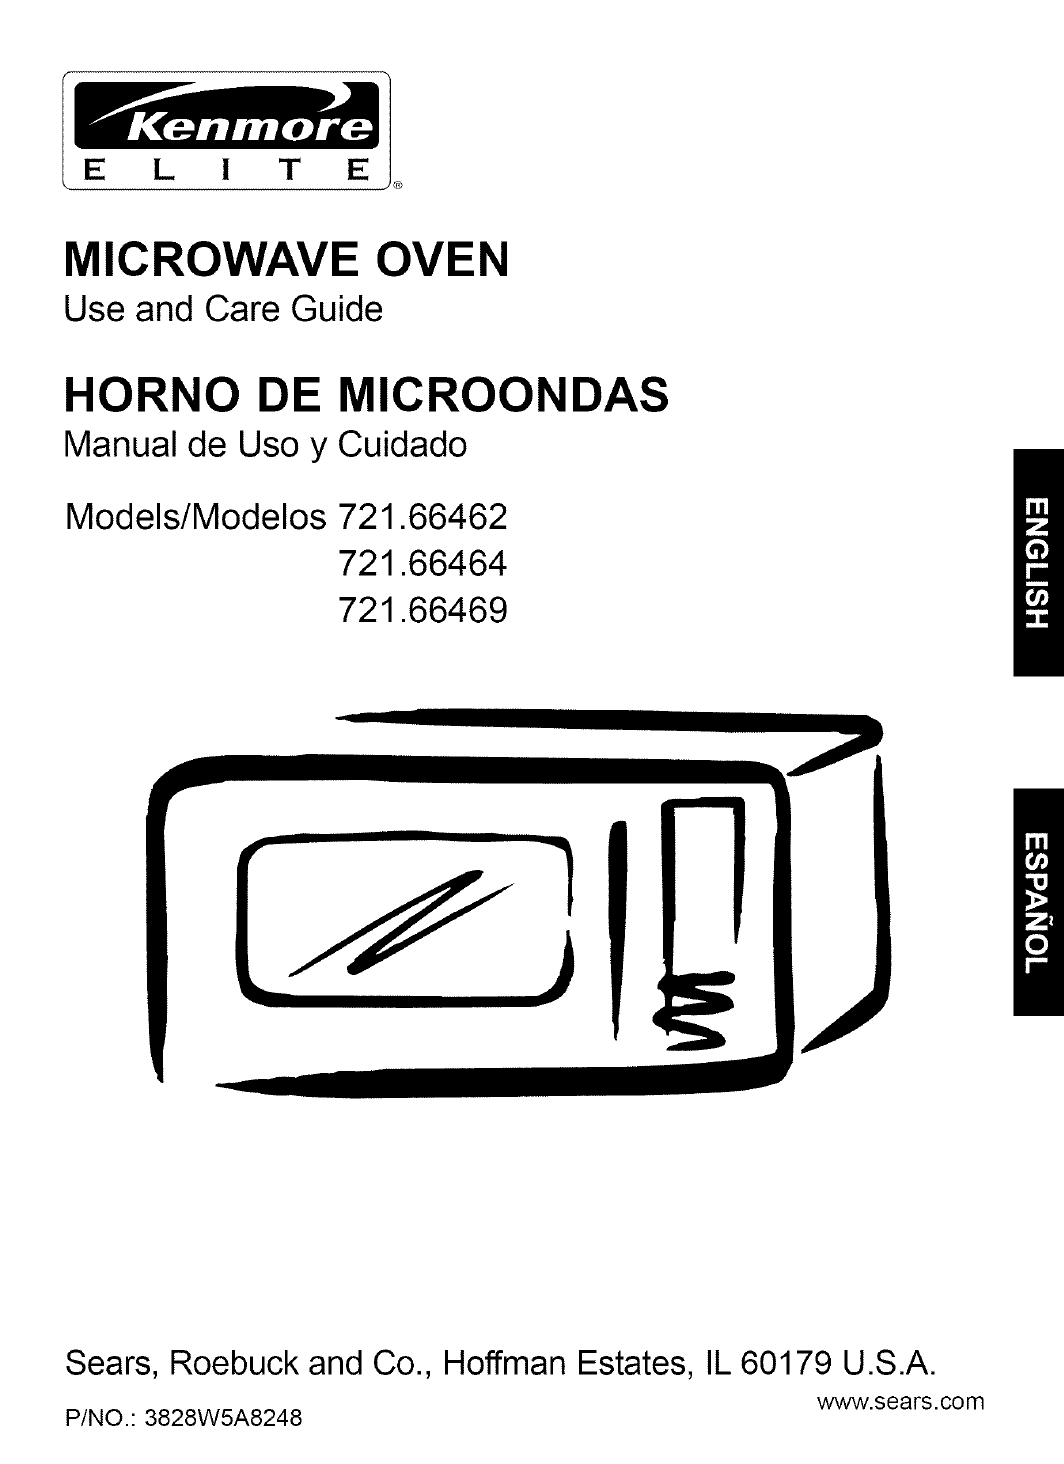 Kenmore 721 Microwave Installation Manual